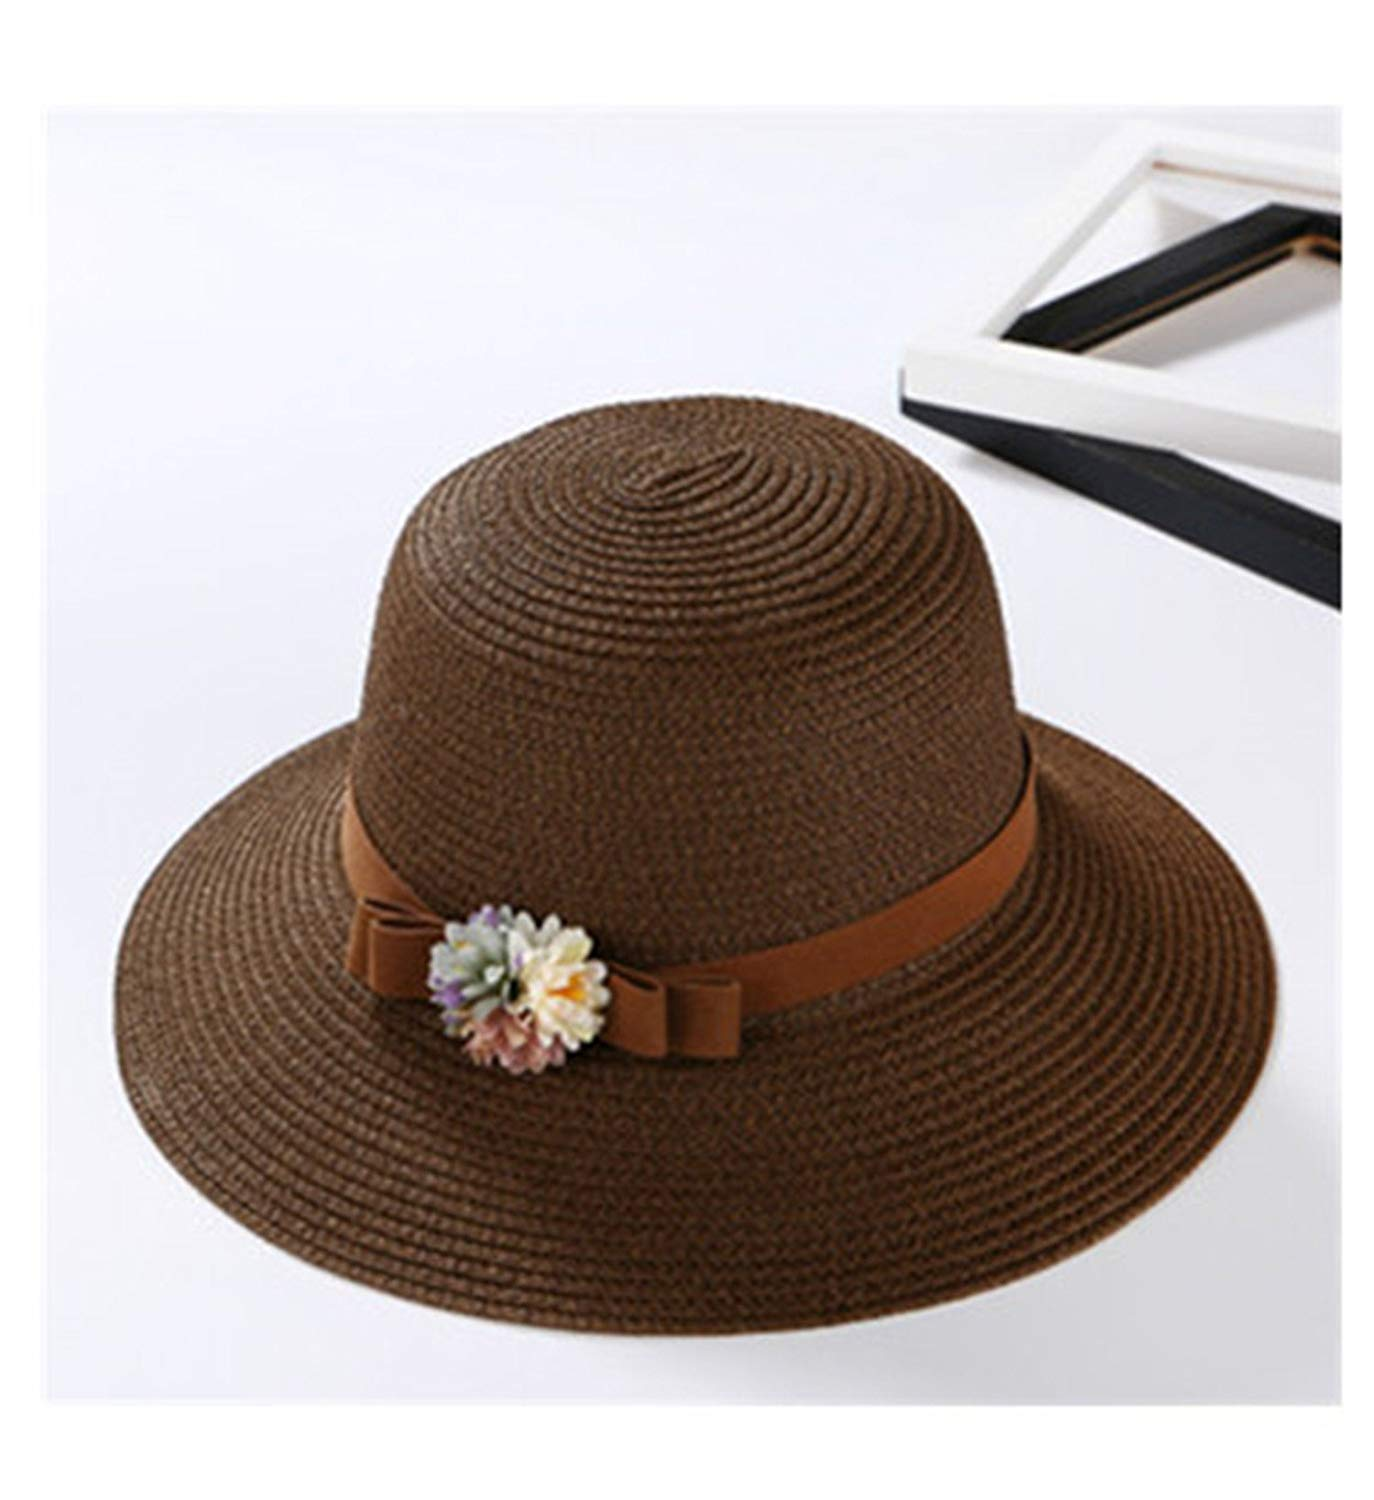 Gail Jonson Summer Big Sun Hat Bowknot Ladies Hat for Female Travel Beach Casual Women Straw Hat Cap Holiday Hat